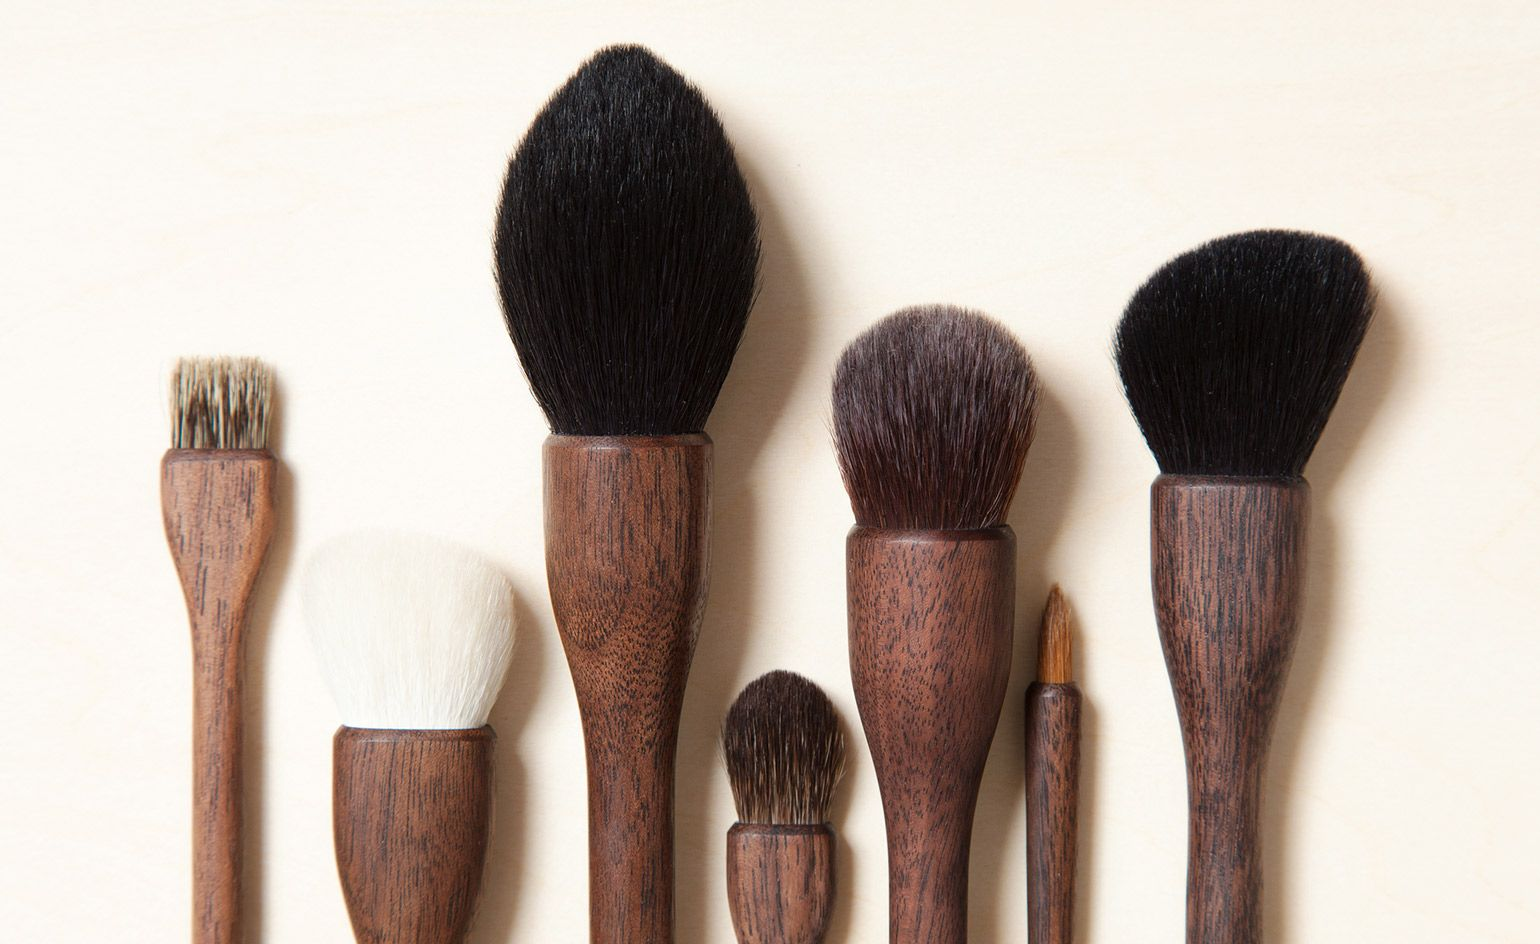 Japanese brand Shaquda is on a role with range of brushes | Wallpaper*